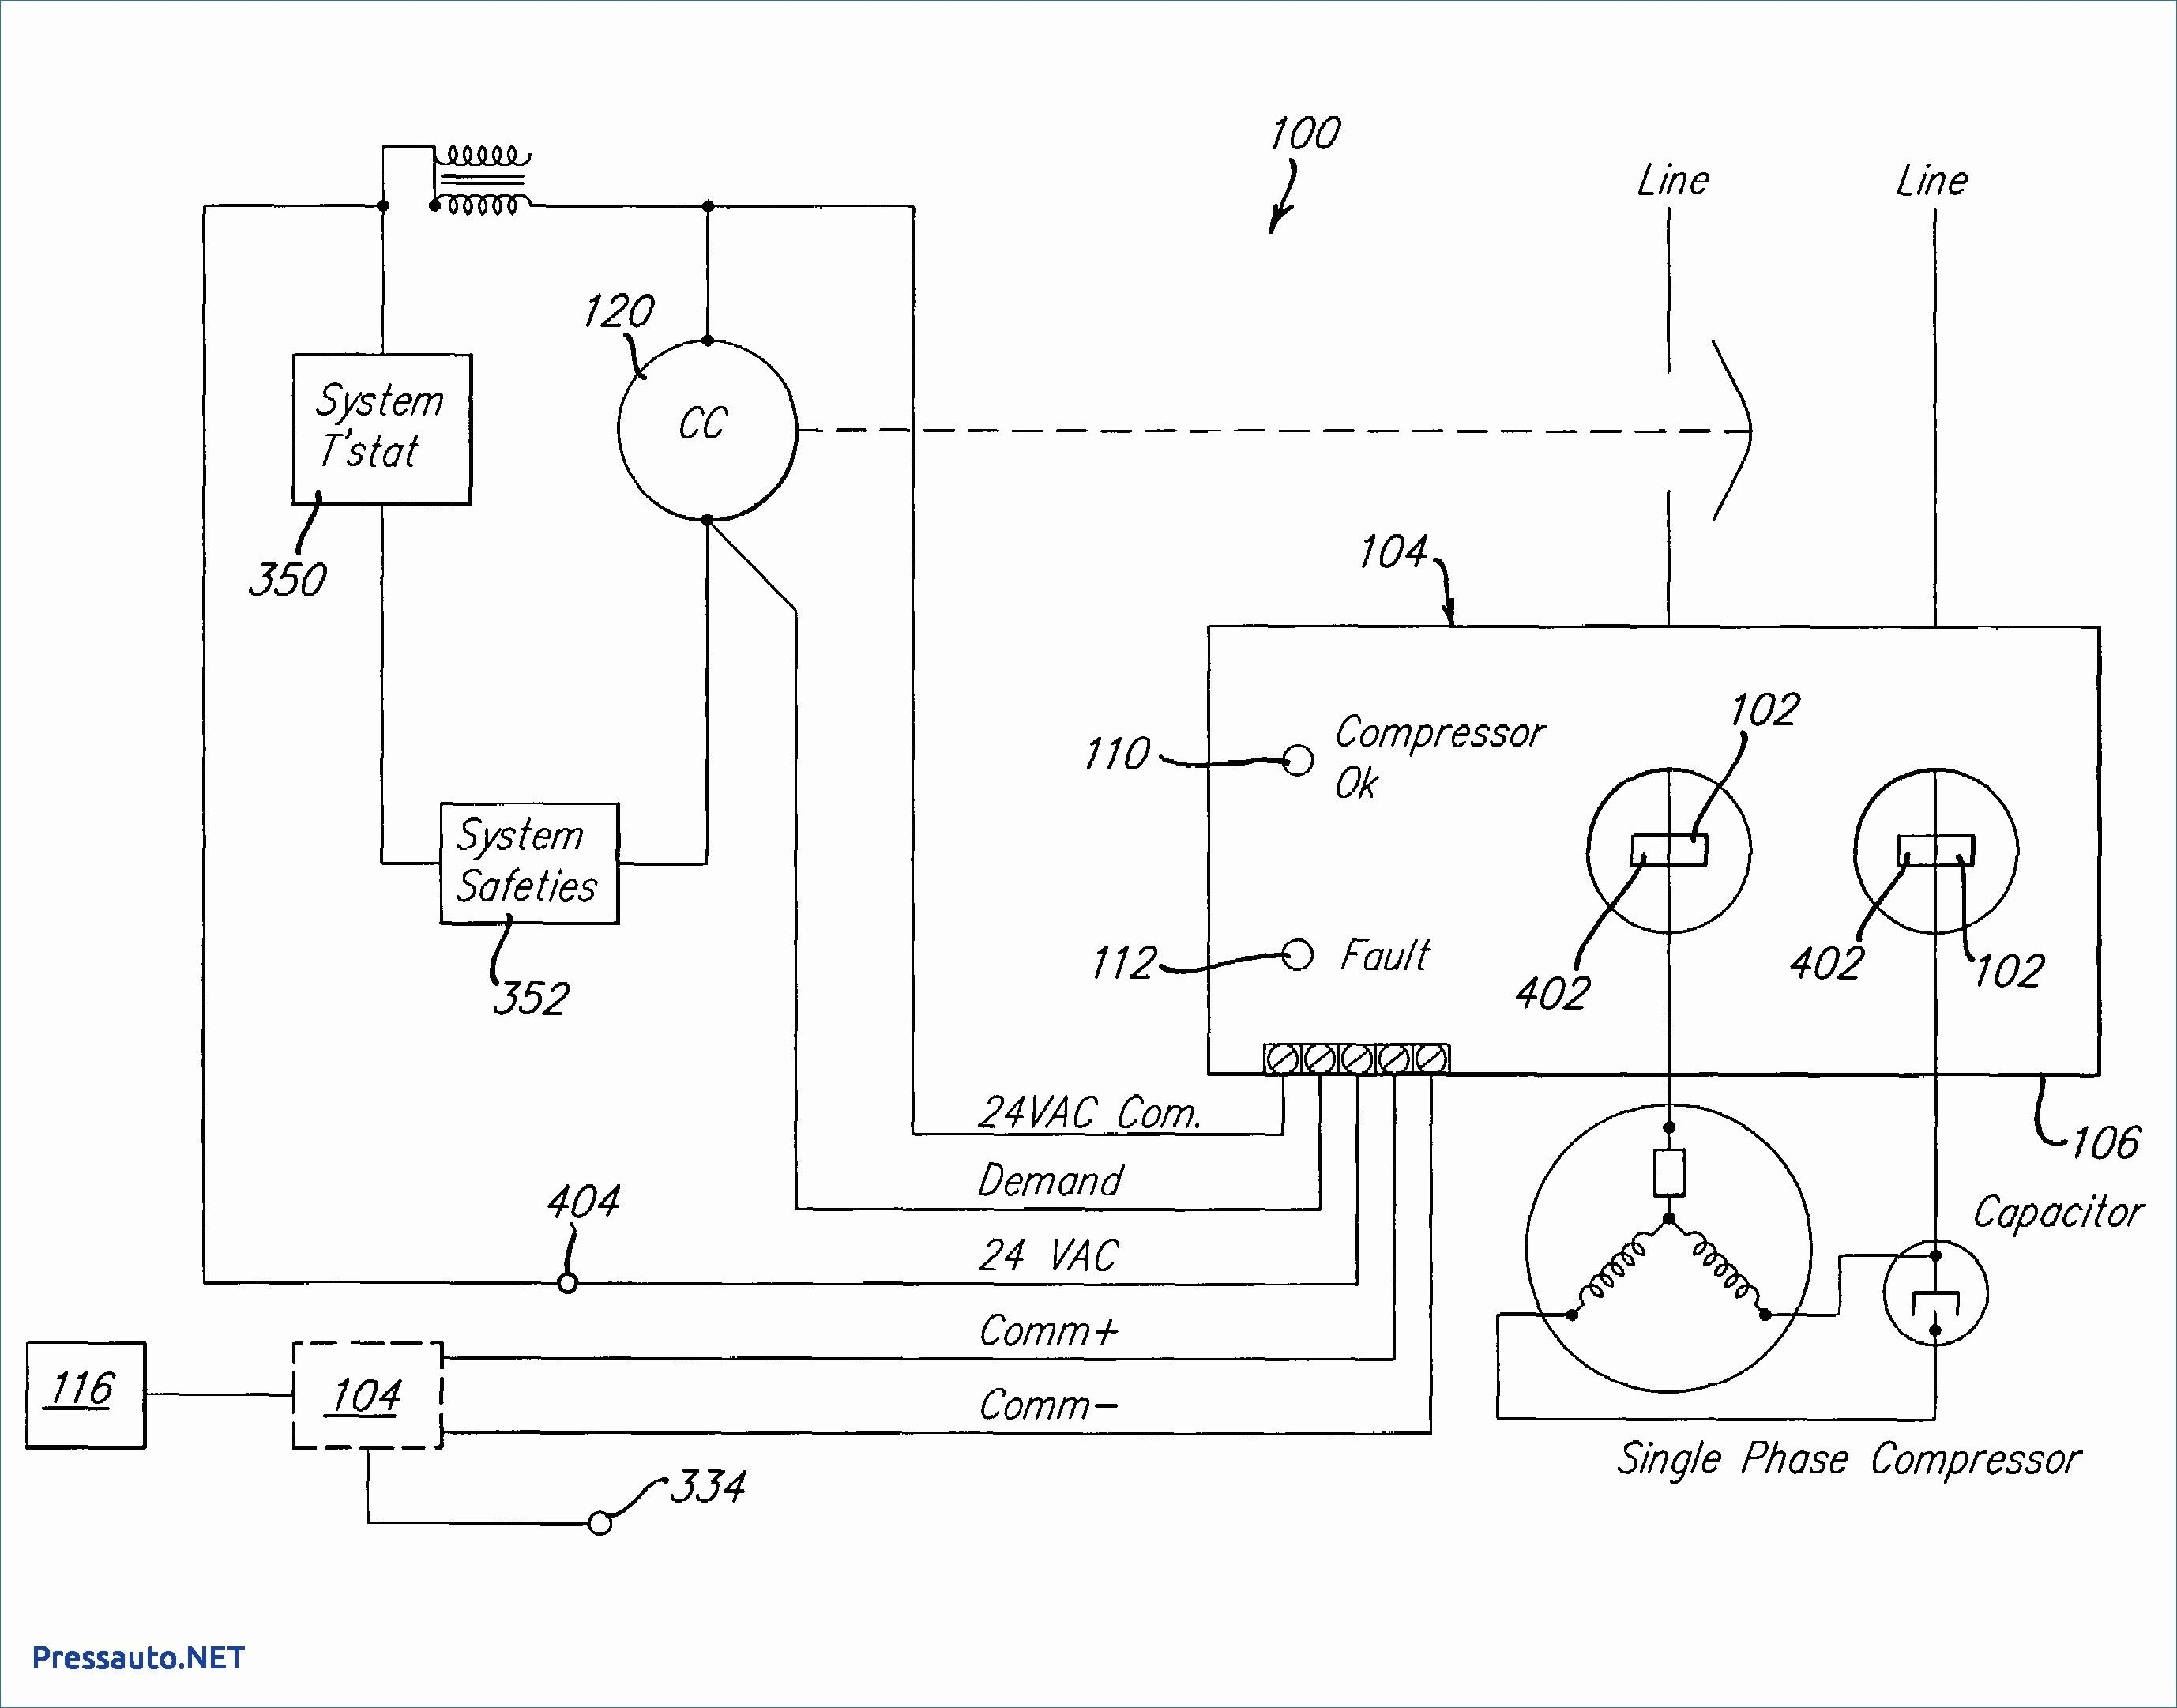 Unique Simple Switch Wiring Diagram Wiringdiagram Diagramming Diagramm Visua Air Compressor Pressure Switch Refrigerator Compressor Exhaust Fan Industrial